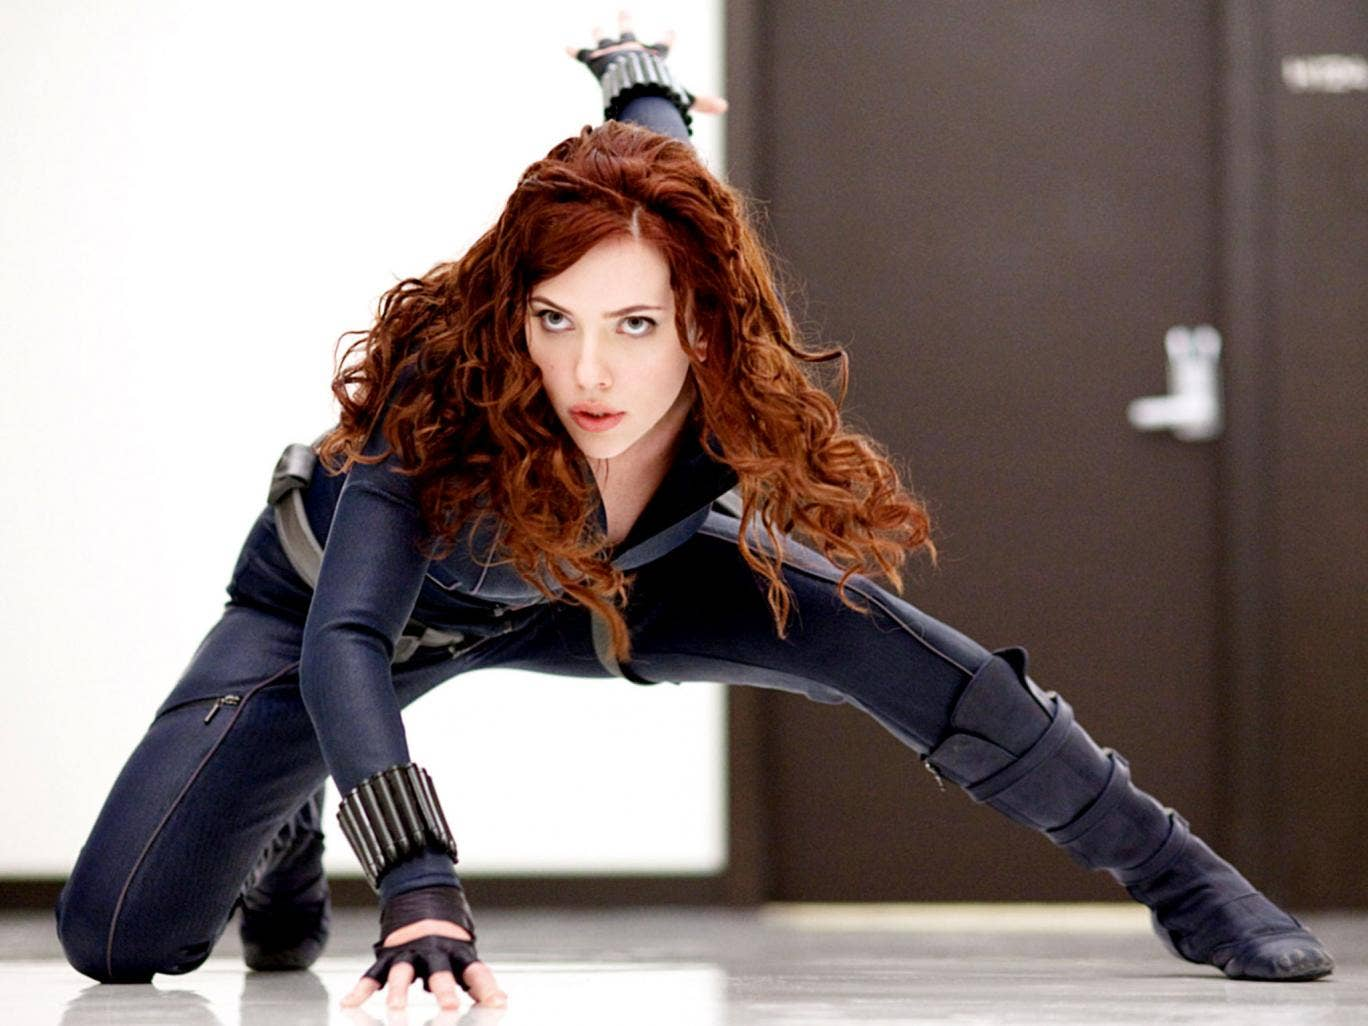 Scarlett Johansson stars as the Black Widow in 2010's Iron Man 2